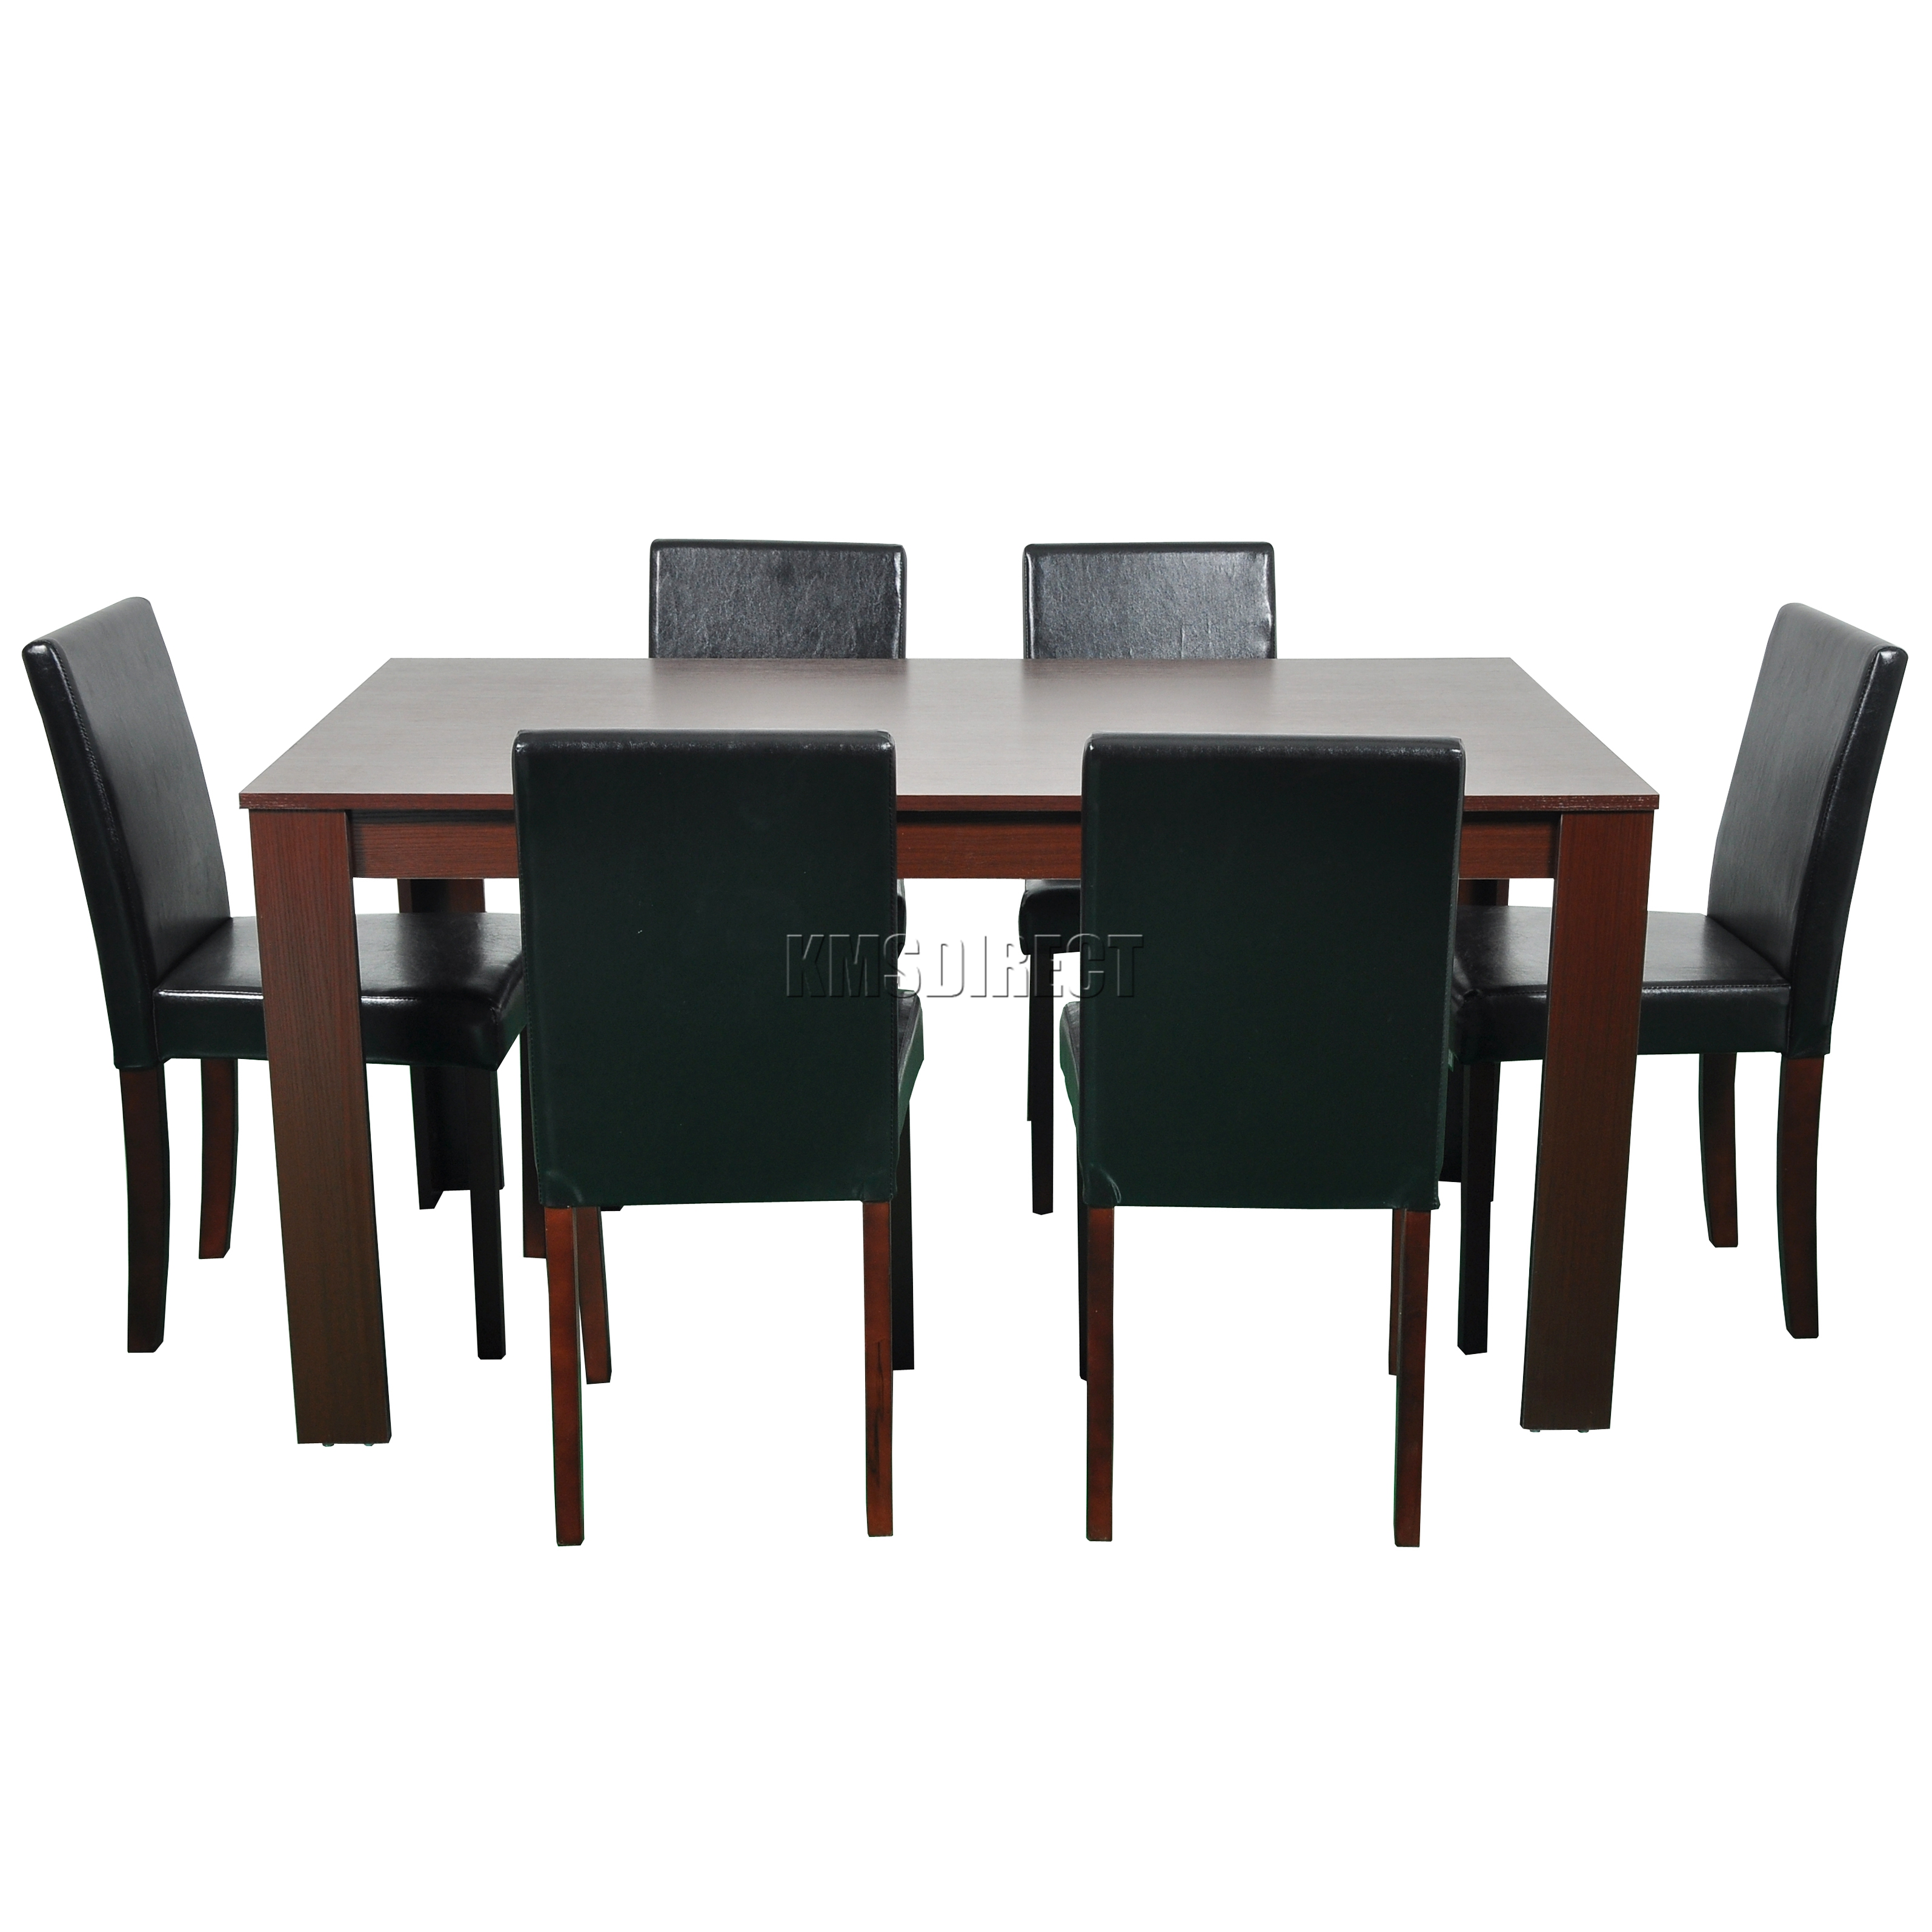 FoxHunter Wooden Dining Table And 6 PU Faux Leather Chairs Set Furniture Waln